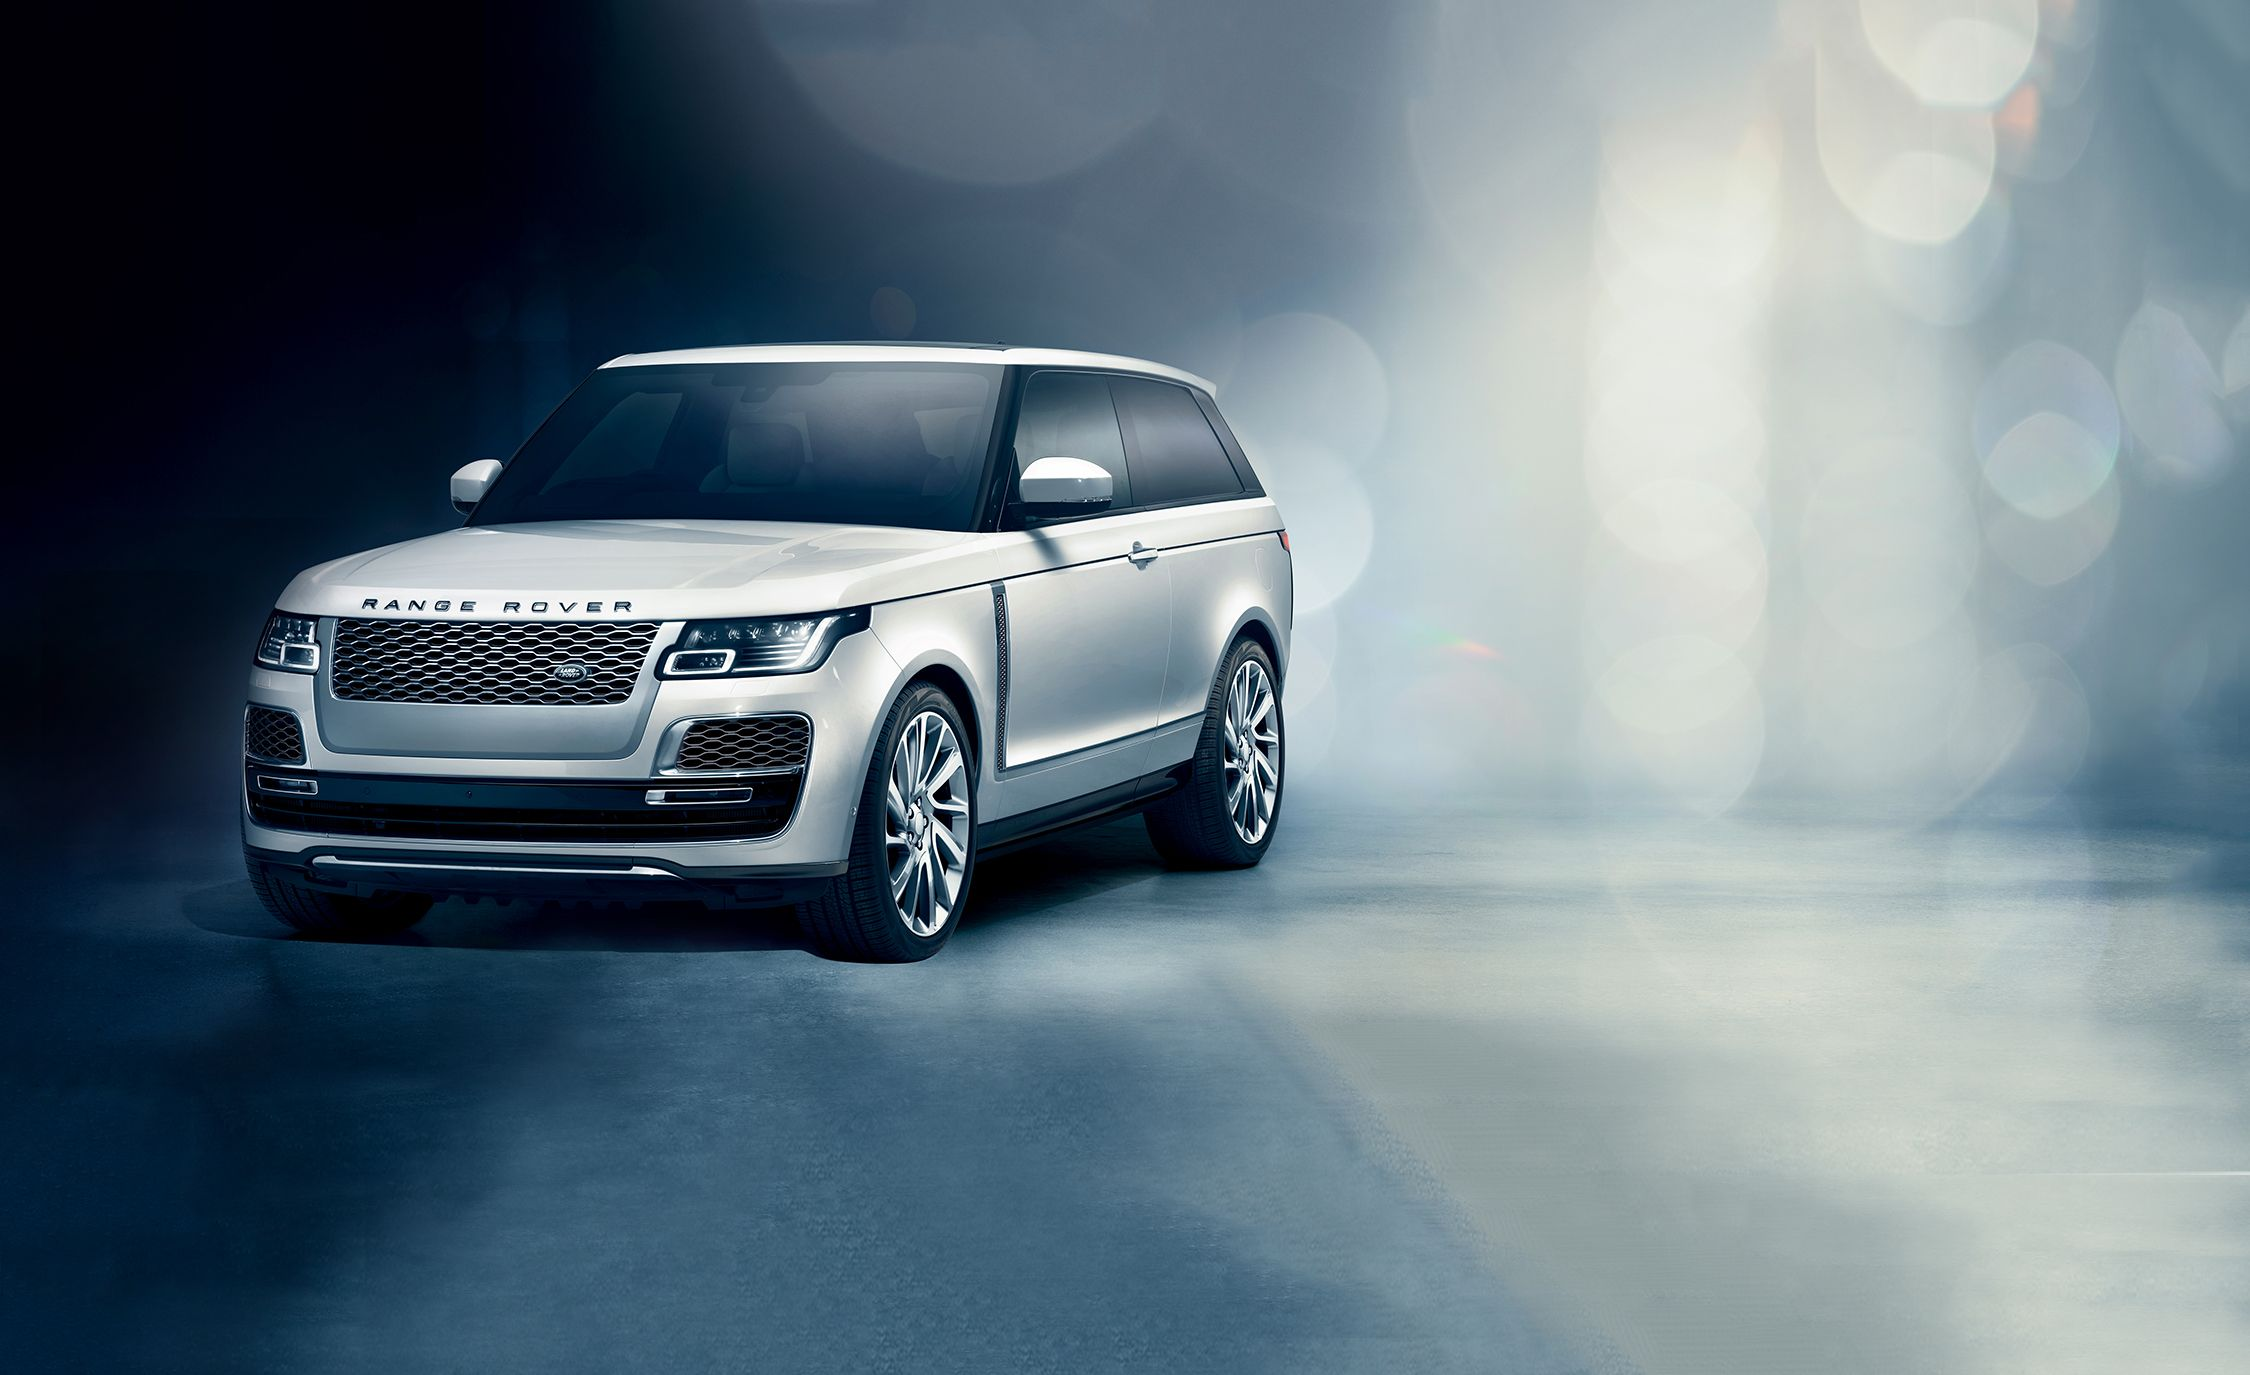 2019 Range Rover SV Coupe Revealed: Fewer Doors, More Power